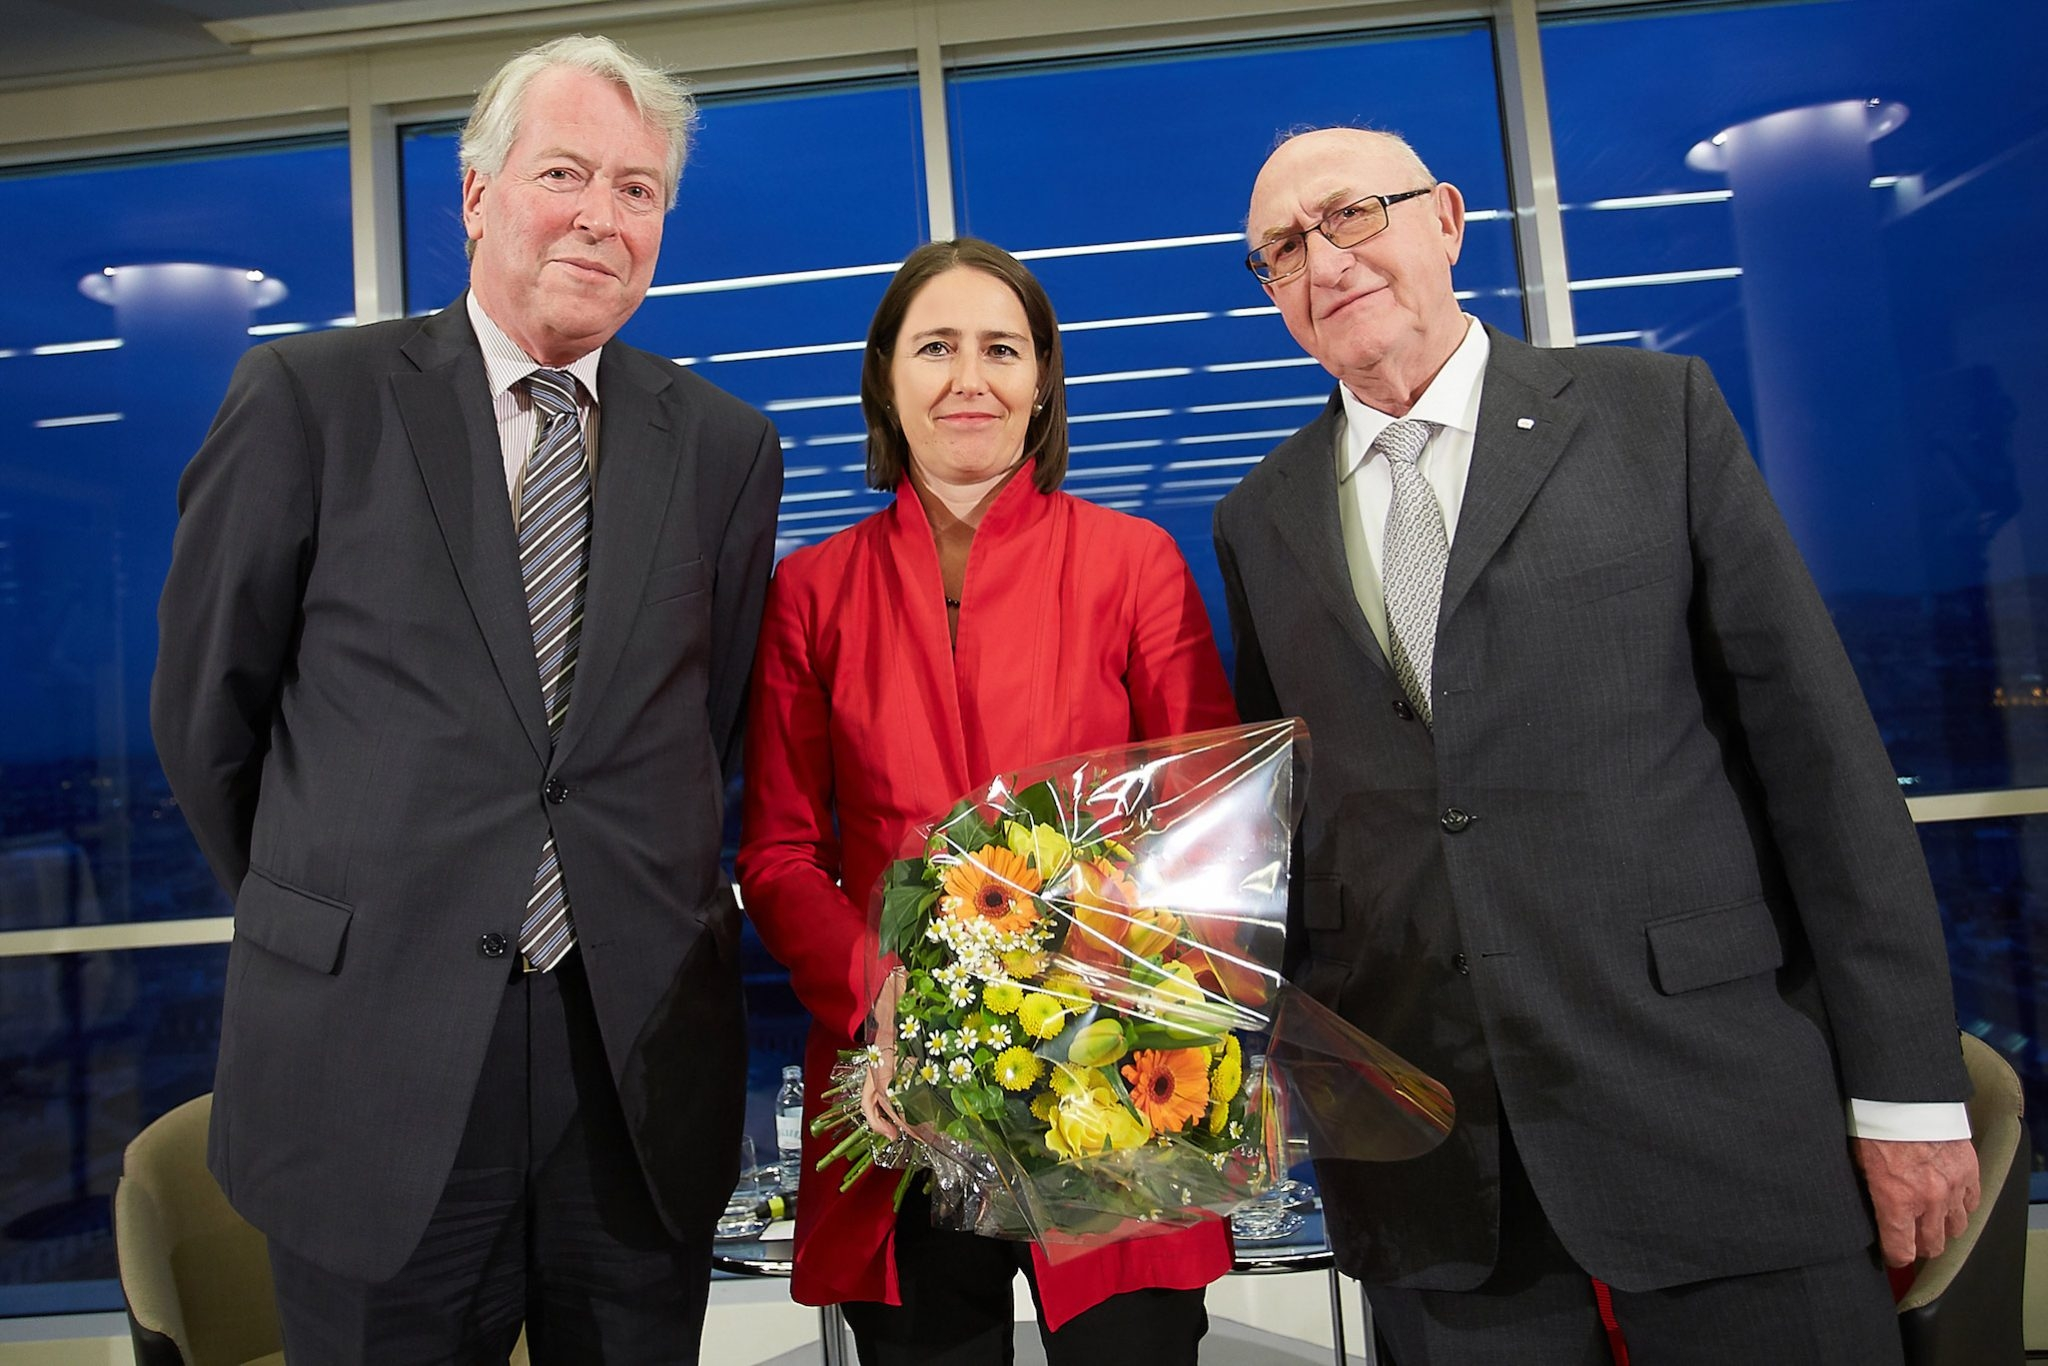 """On the picture from left to right: Martin Hellwig (economist), Dr. Alexandra Föderl-Schmid (editor in chief """"Der Standard"""") and Dr. Günter Geyer (Chairman of the Managing Board of Wiener Städtische Versicherungsverein). © Wiener Städtische Versicherungsverein/APA-Fotoservice/Preiss"""